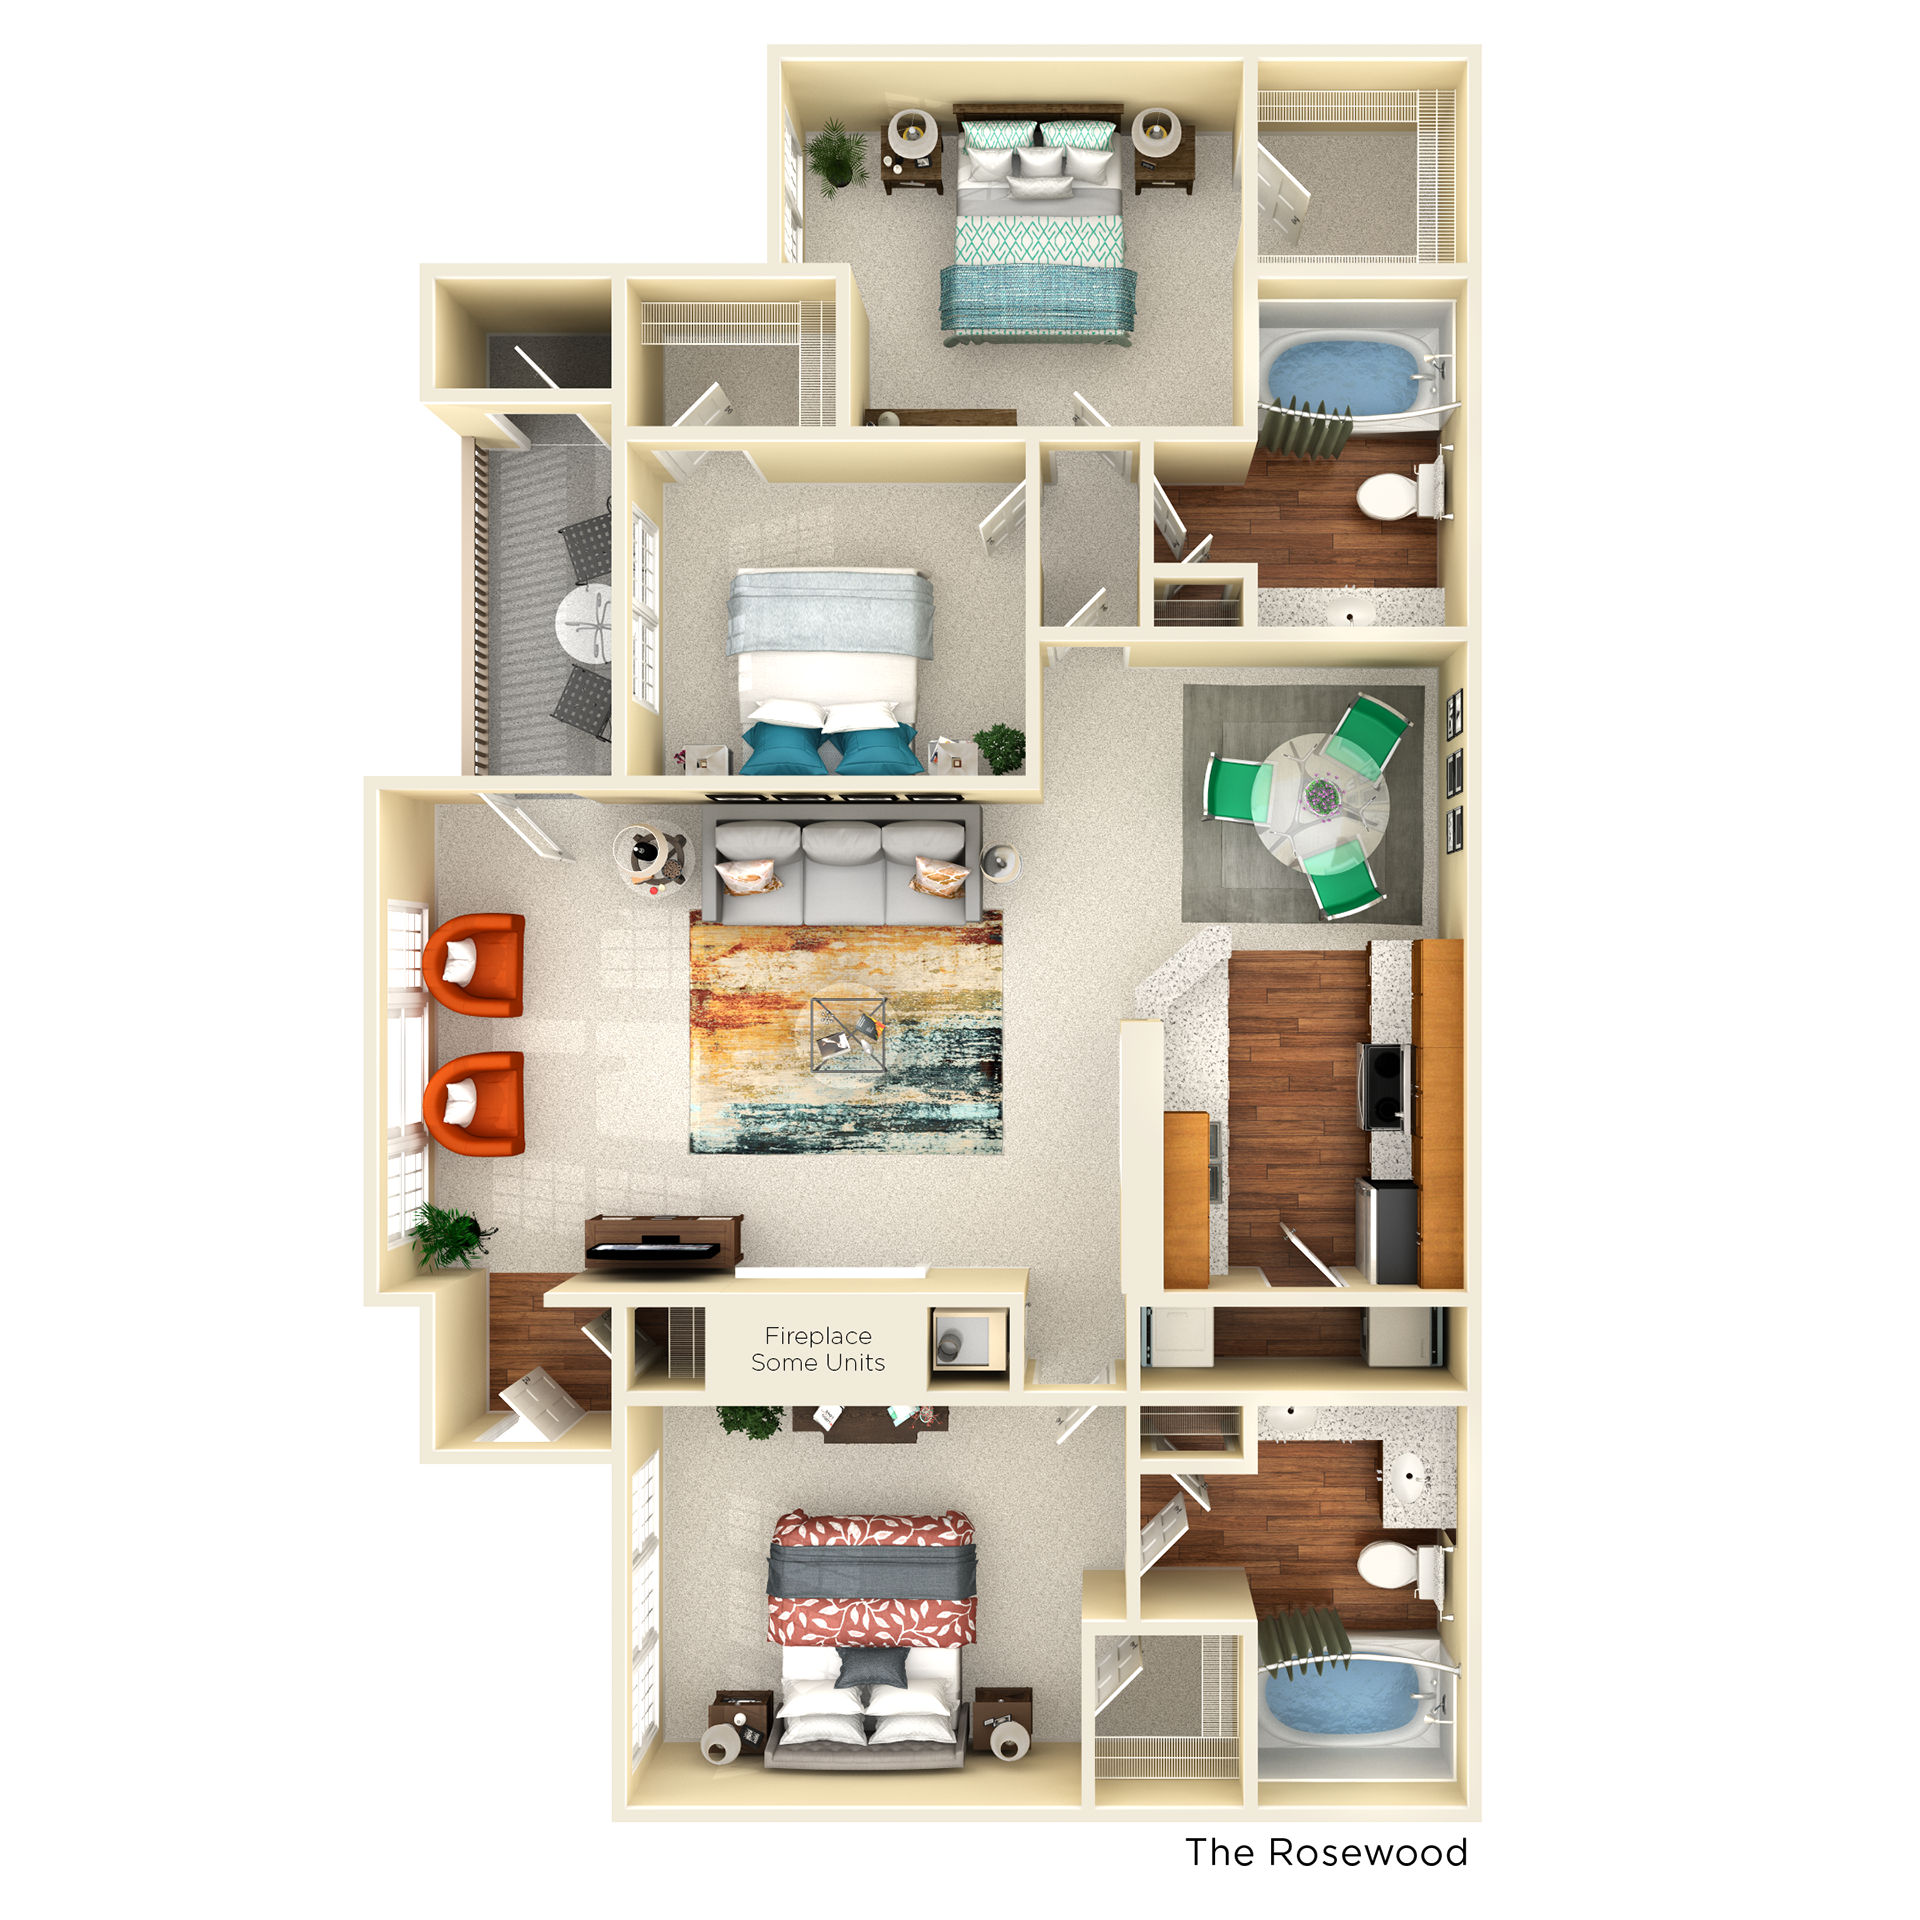 D1 rosewood floor plan